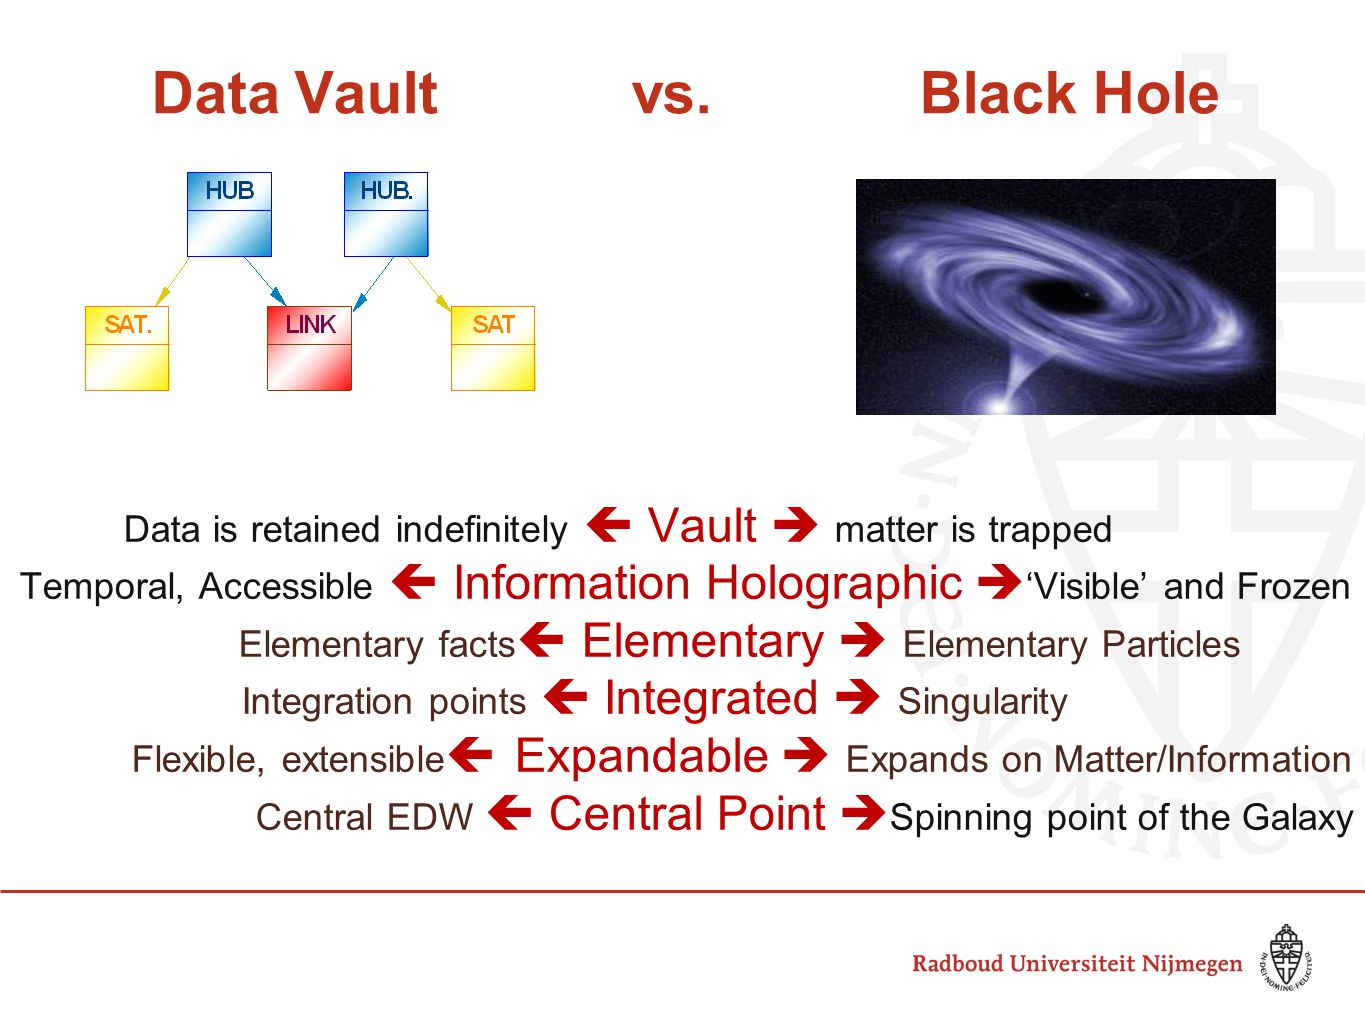 Data Vault vs. Black Hole